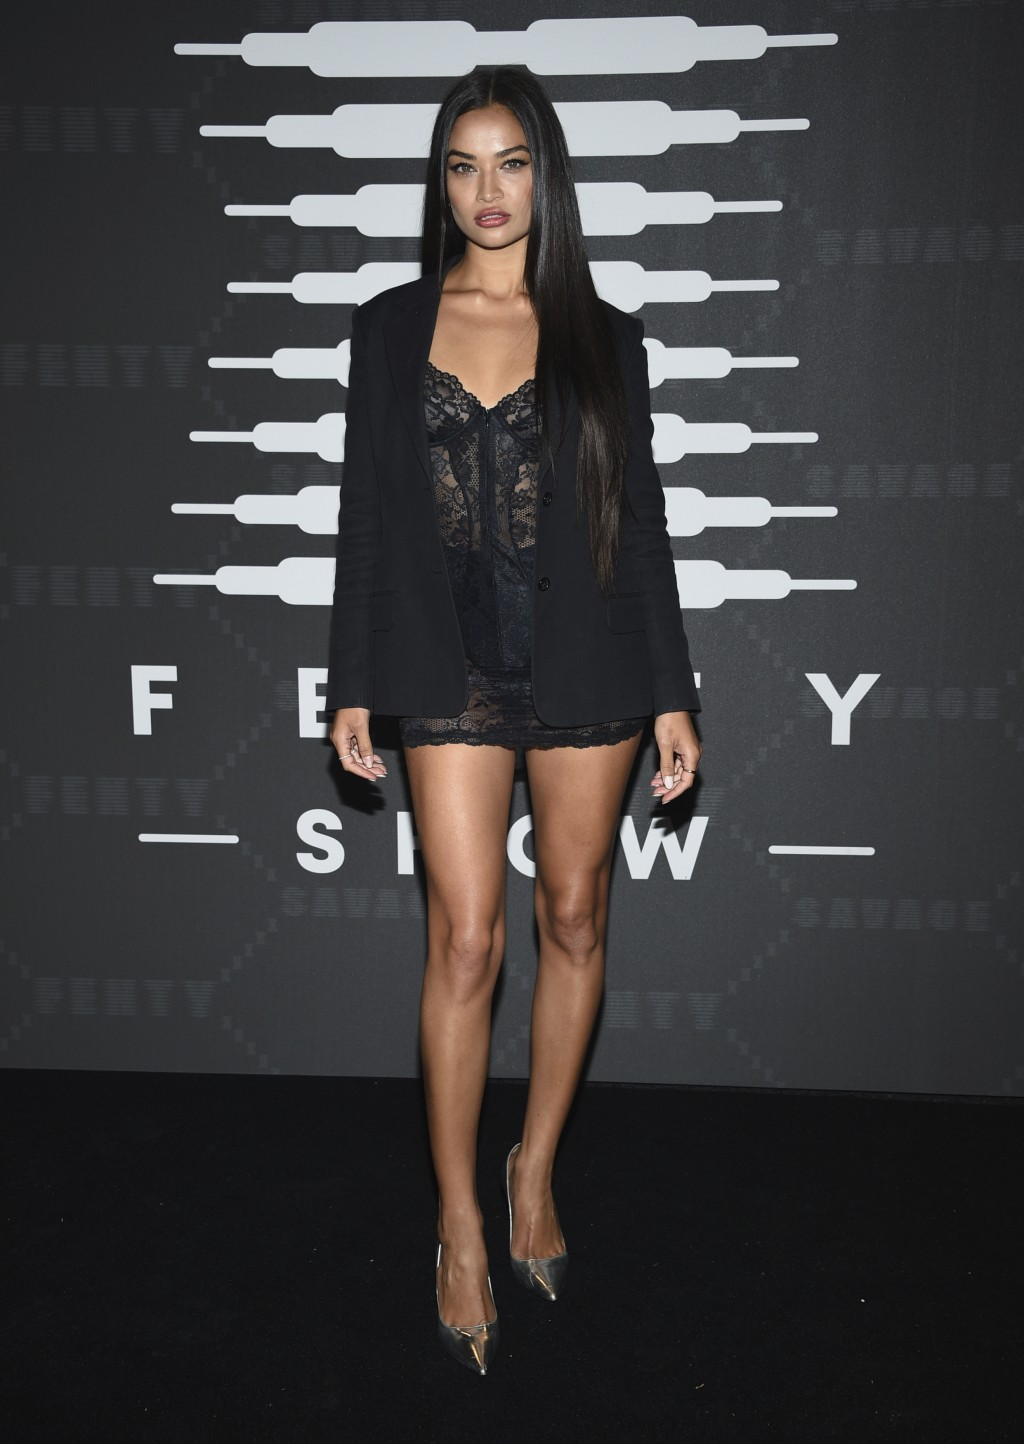 Model Shanina Shaik attends the Spring/Summer 2020 Savage X Fenty show, presented by Amazon Prime, at the Barclays Center on Tuesday, Sept, 10, 2019, ...